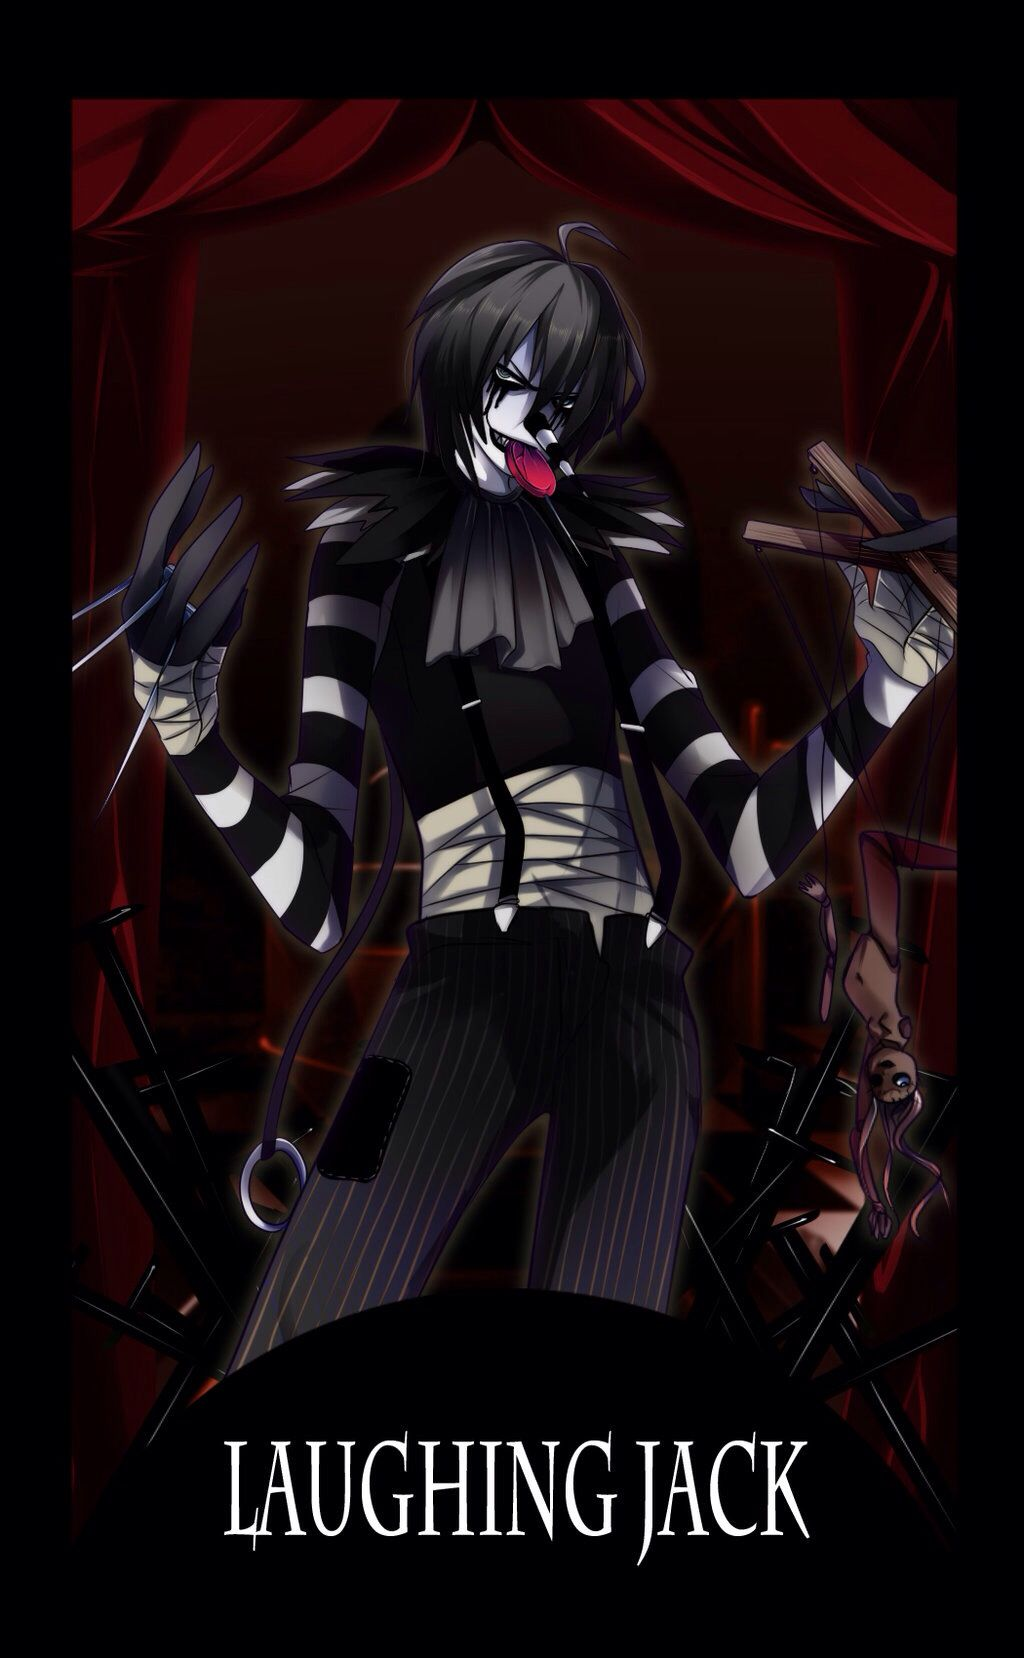 Laughing Jack Jack creepypasta, Creepypasta, Laughing jack